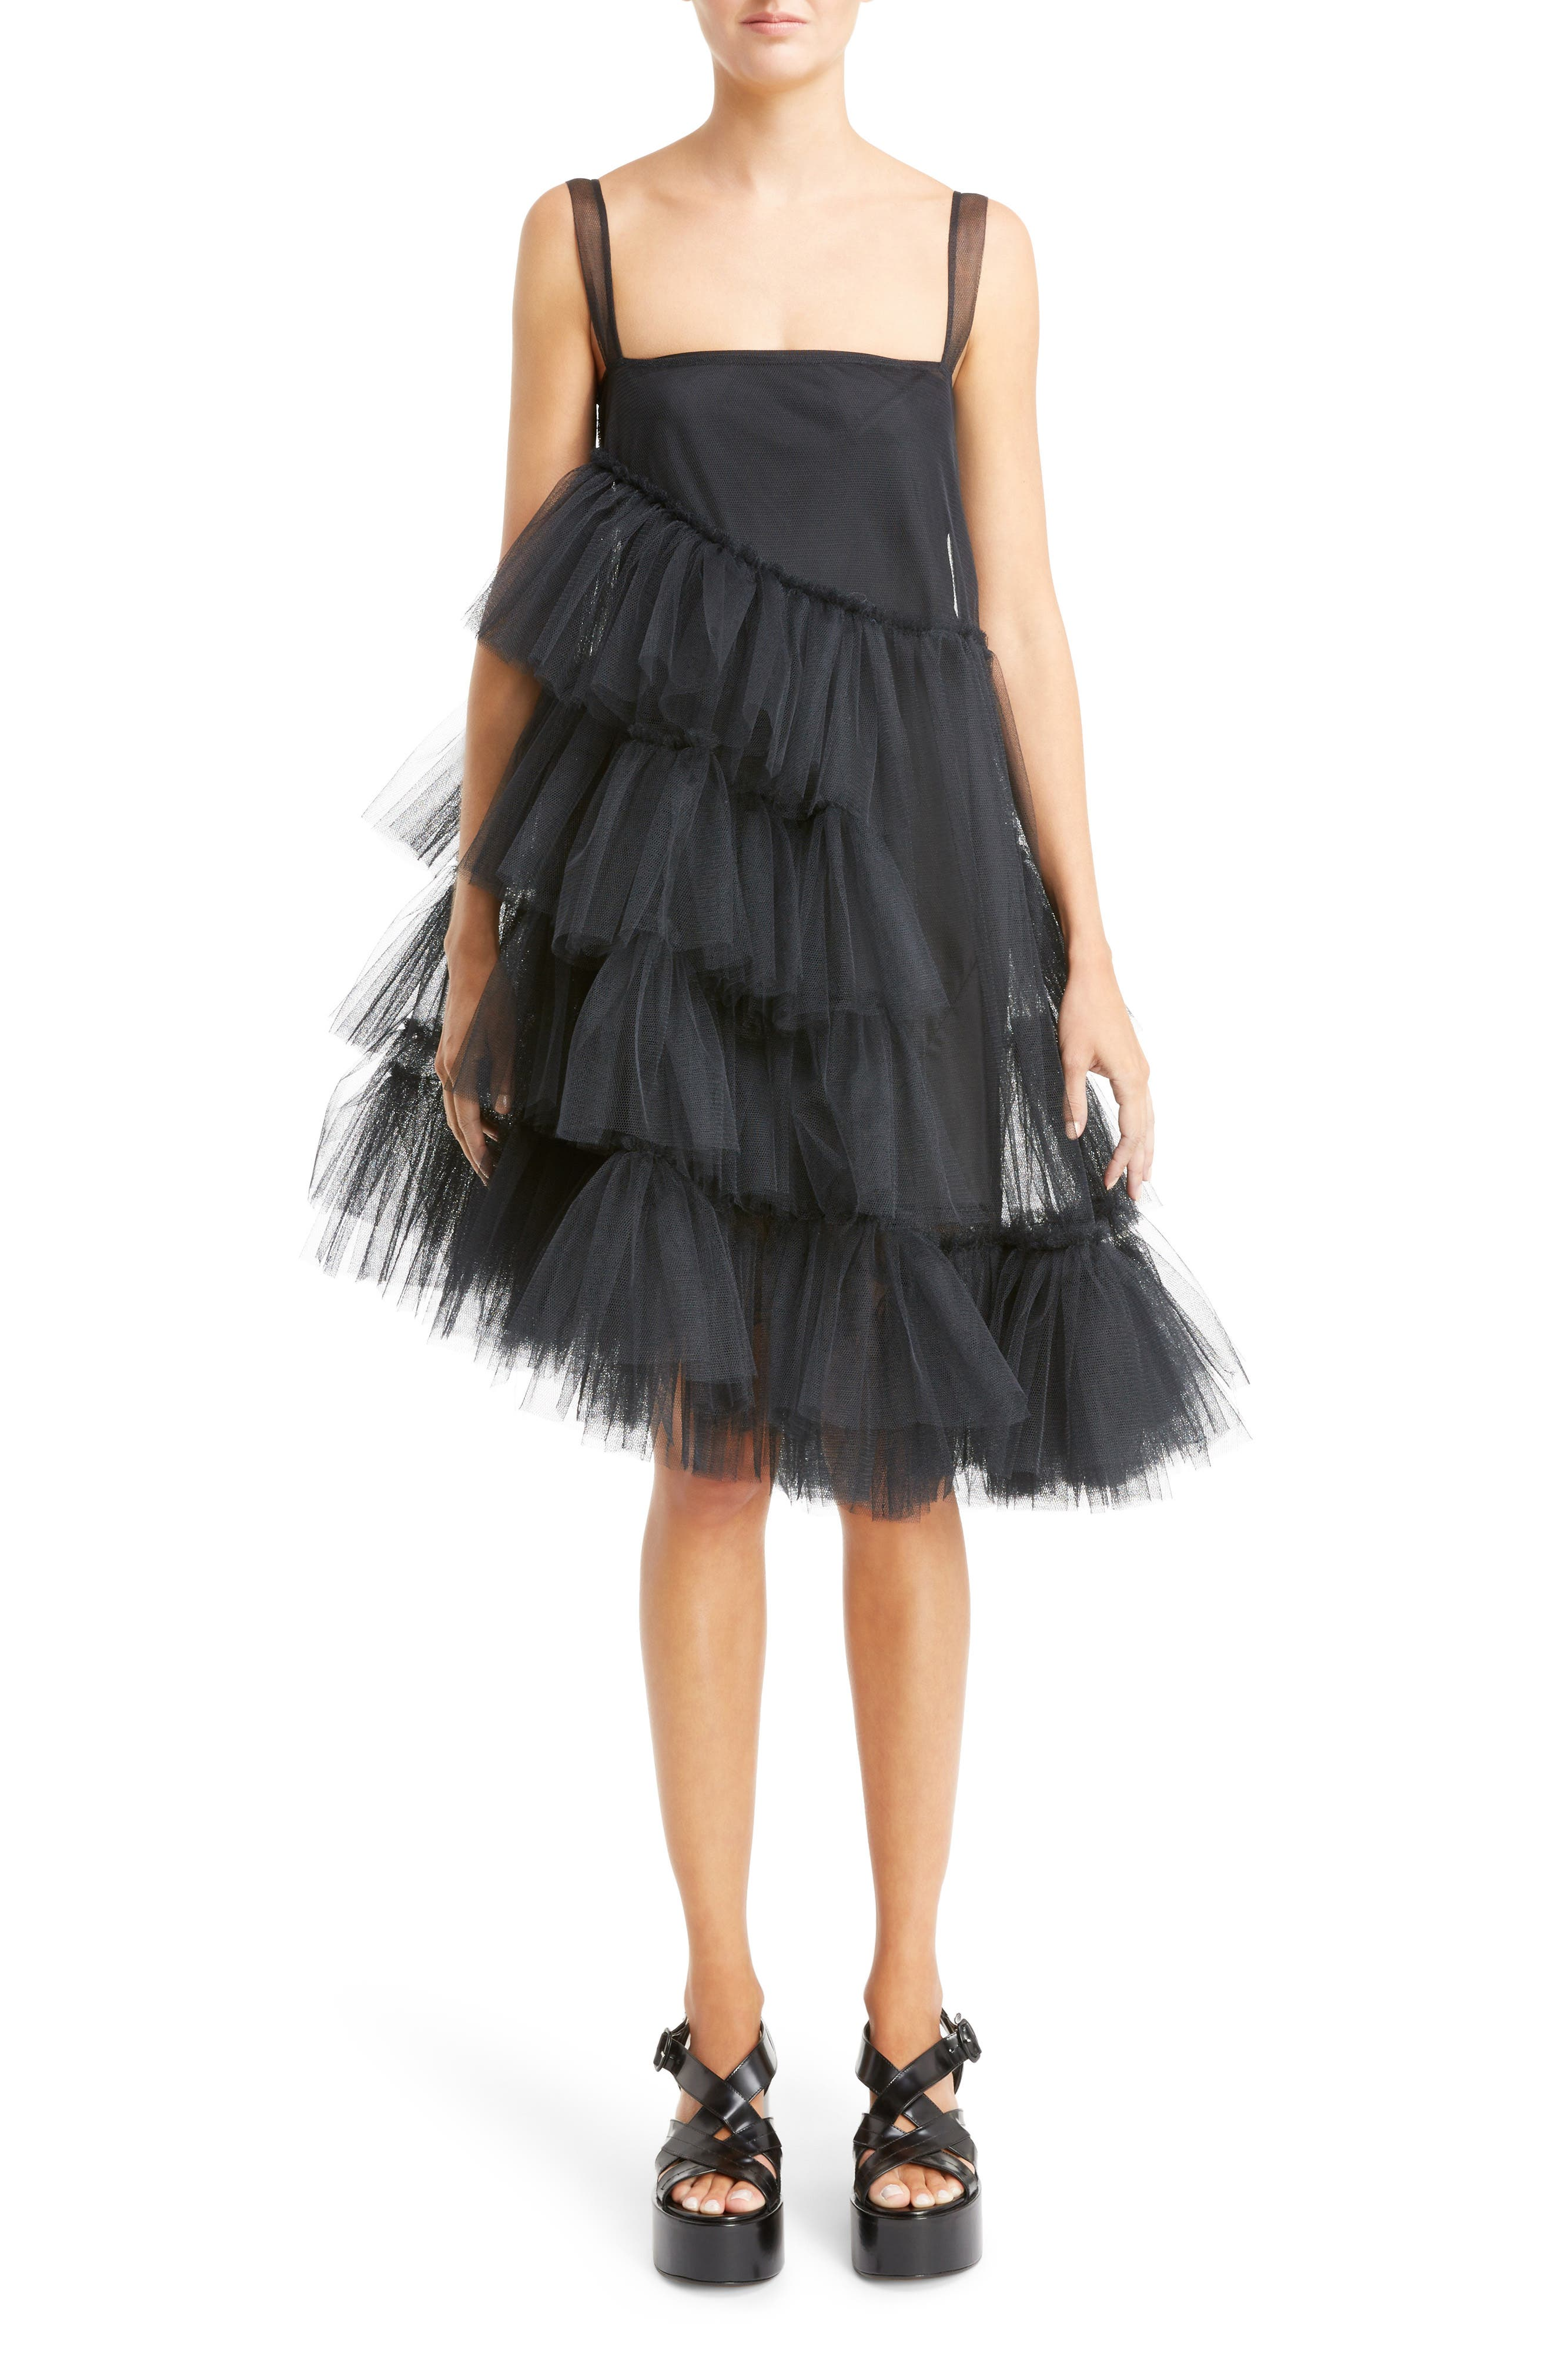 Simone Rocha Turbo Tiered Tulle Dress